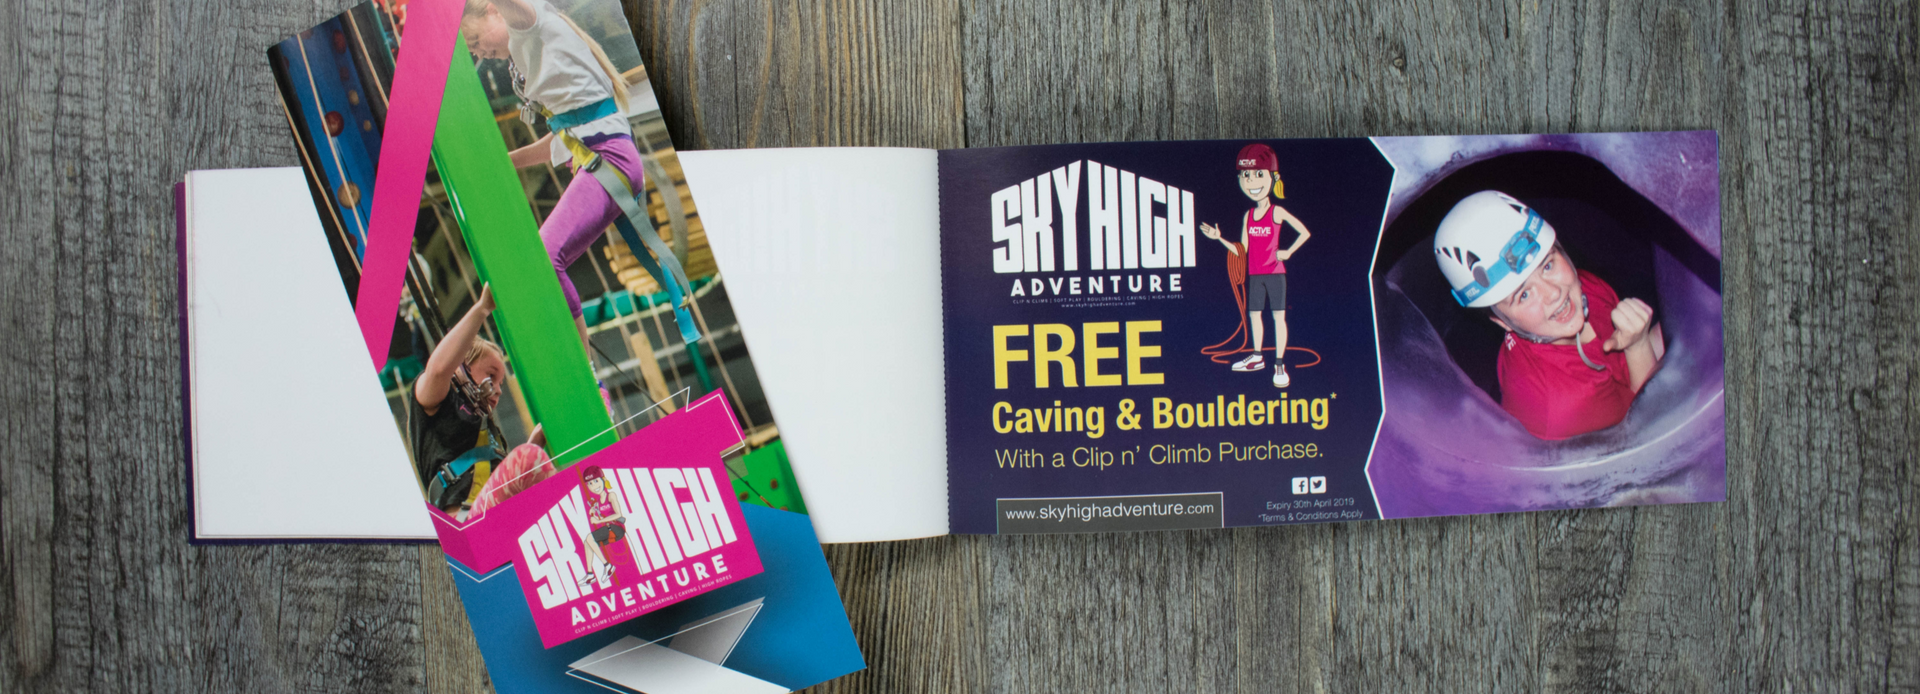 PERFORATED VOUCHER BOOKLETS • Sky High Adventure